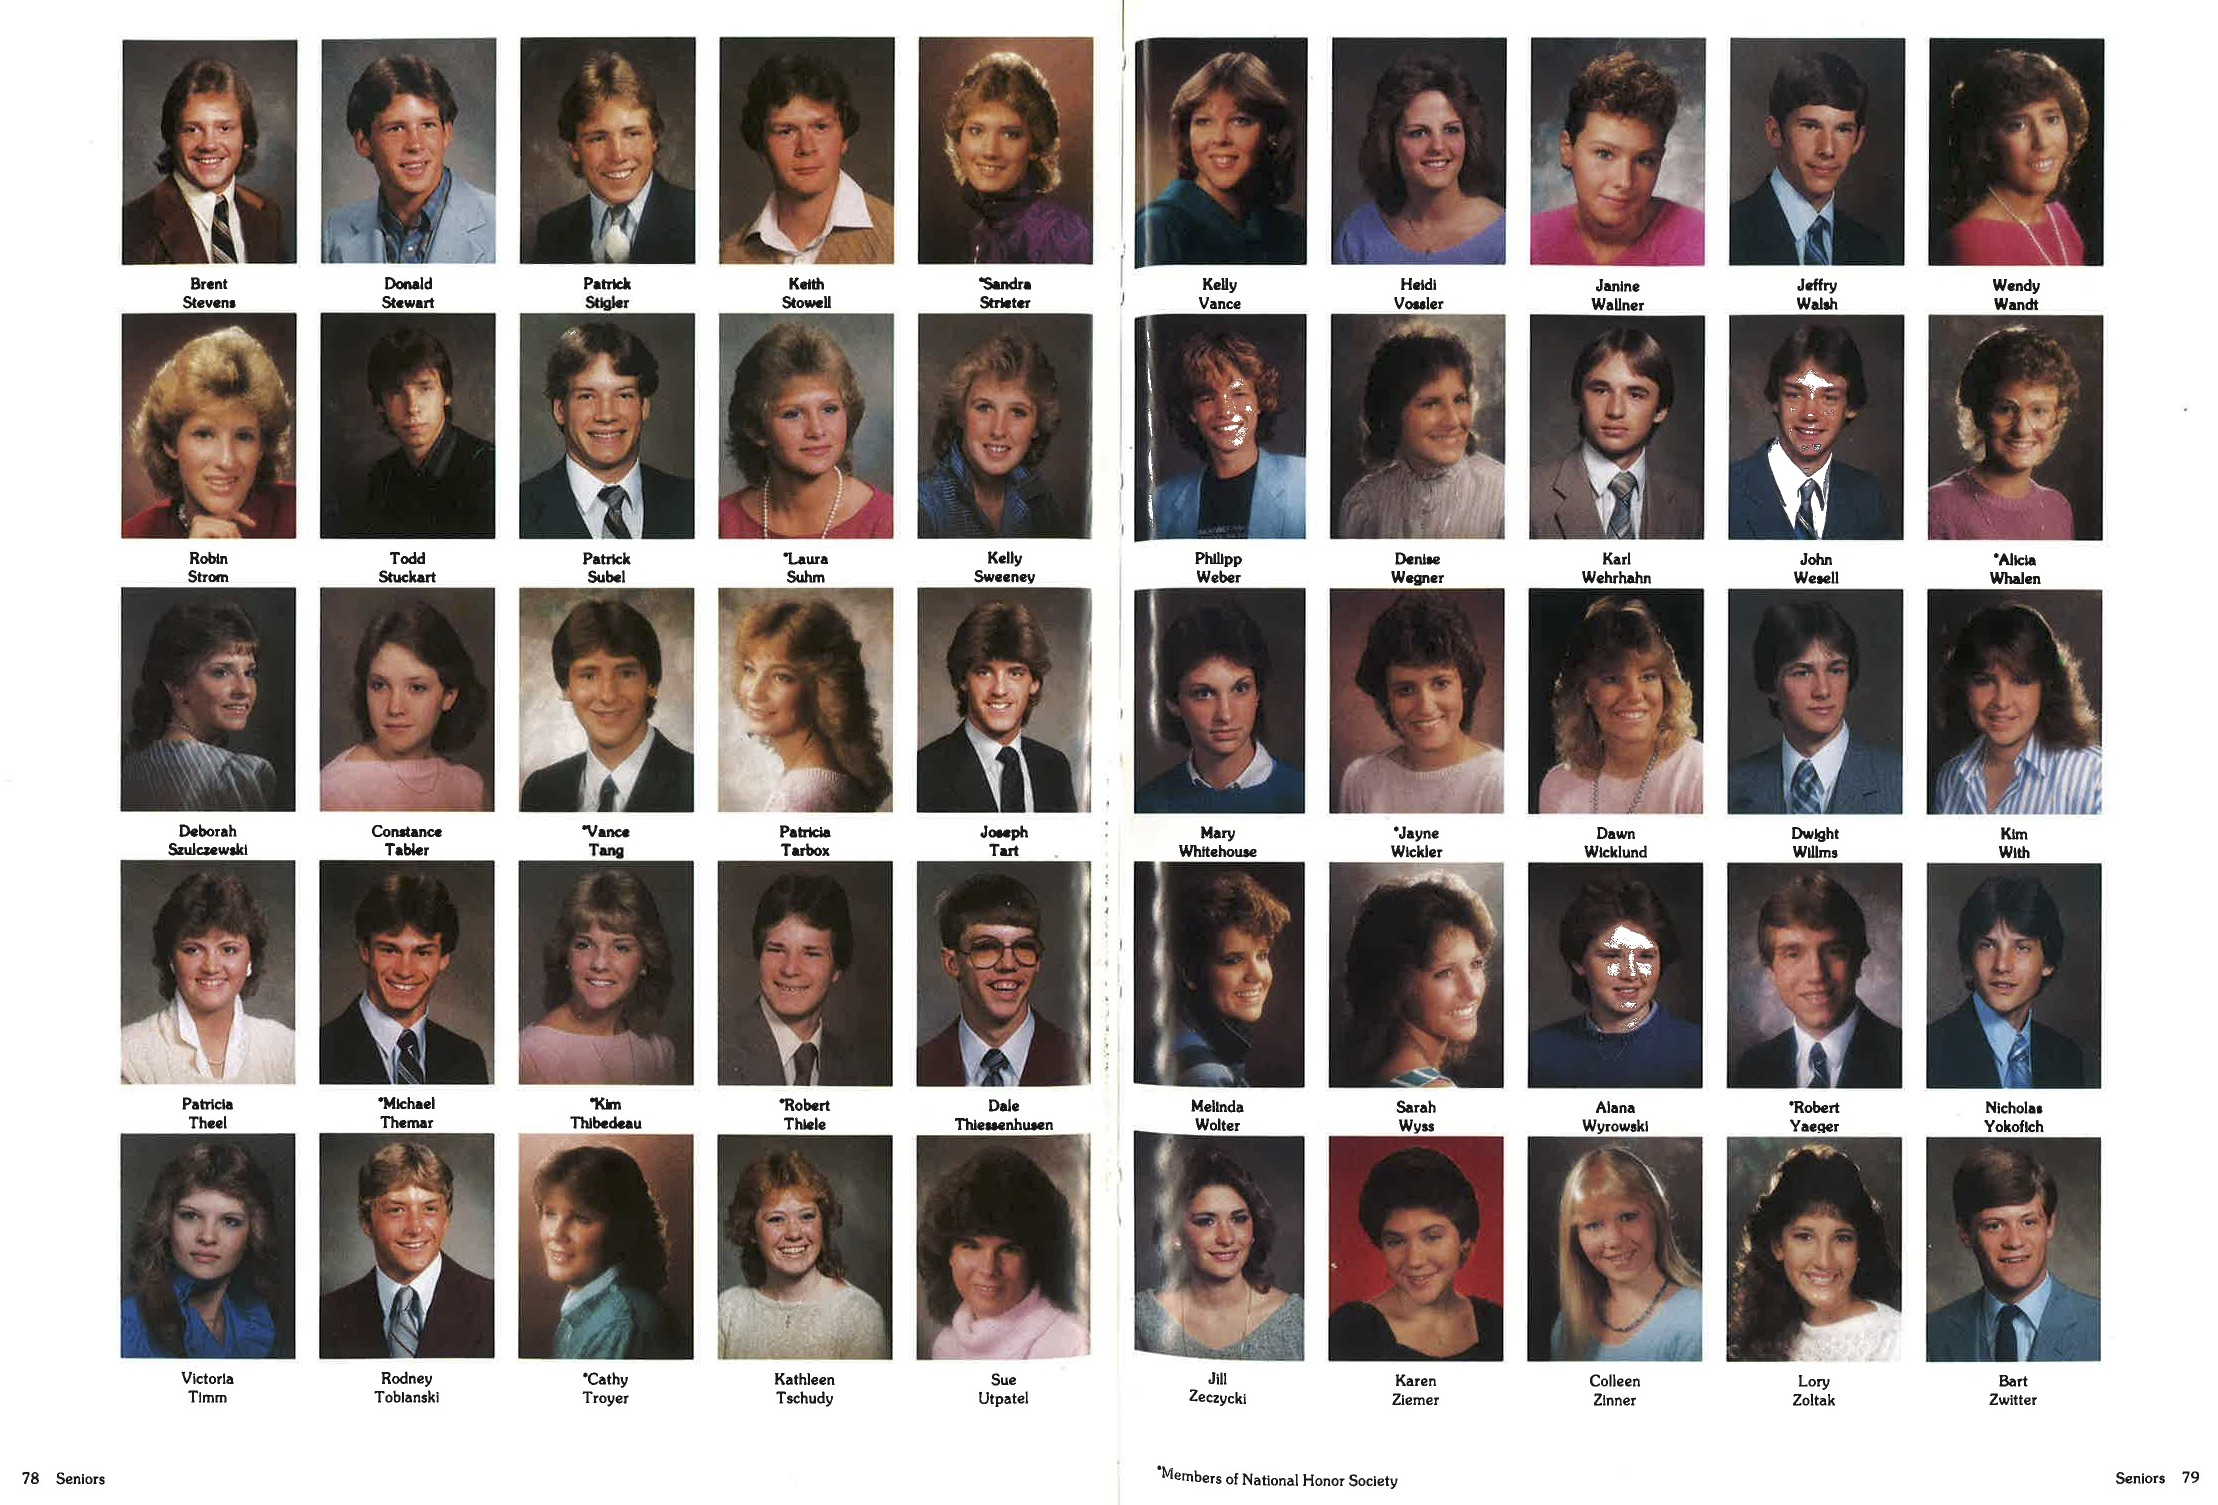 1985_Yearbook_36.jpg